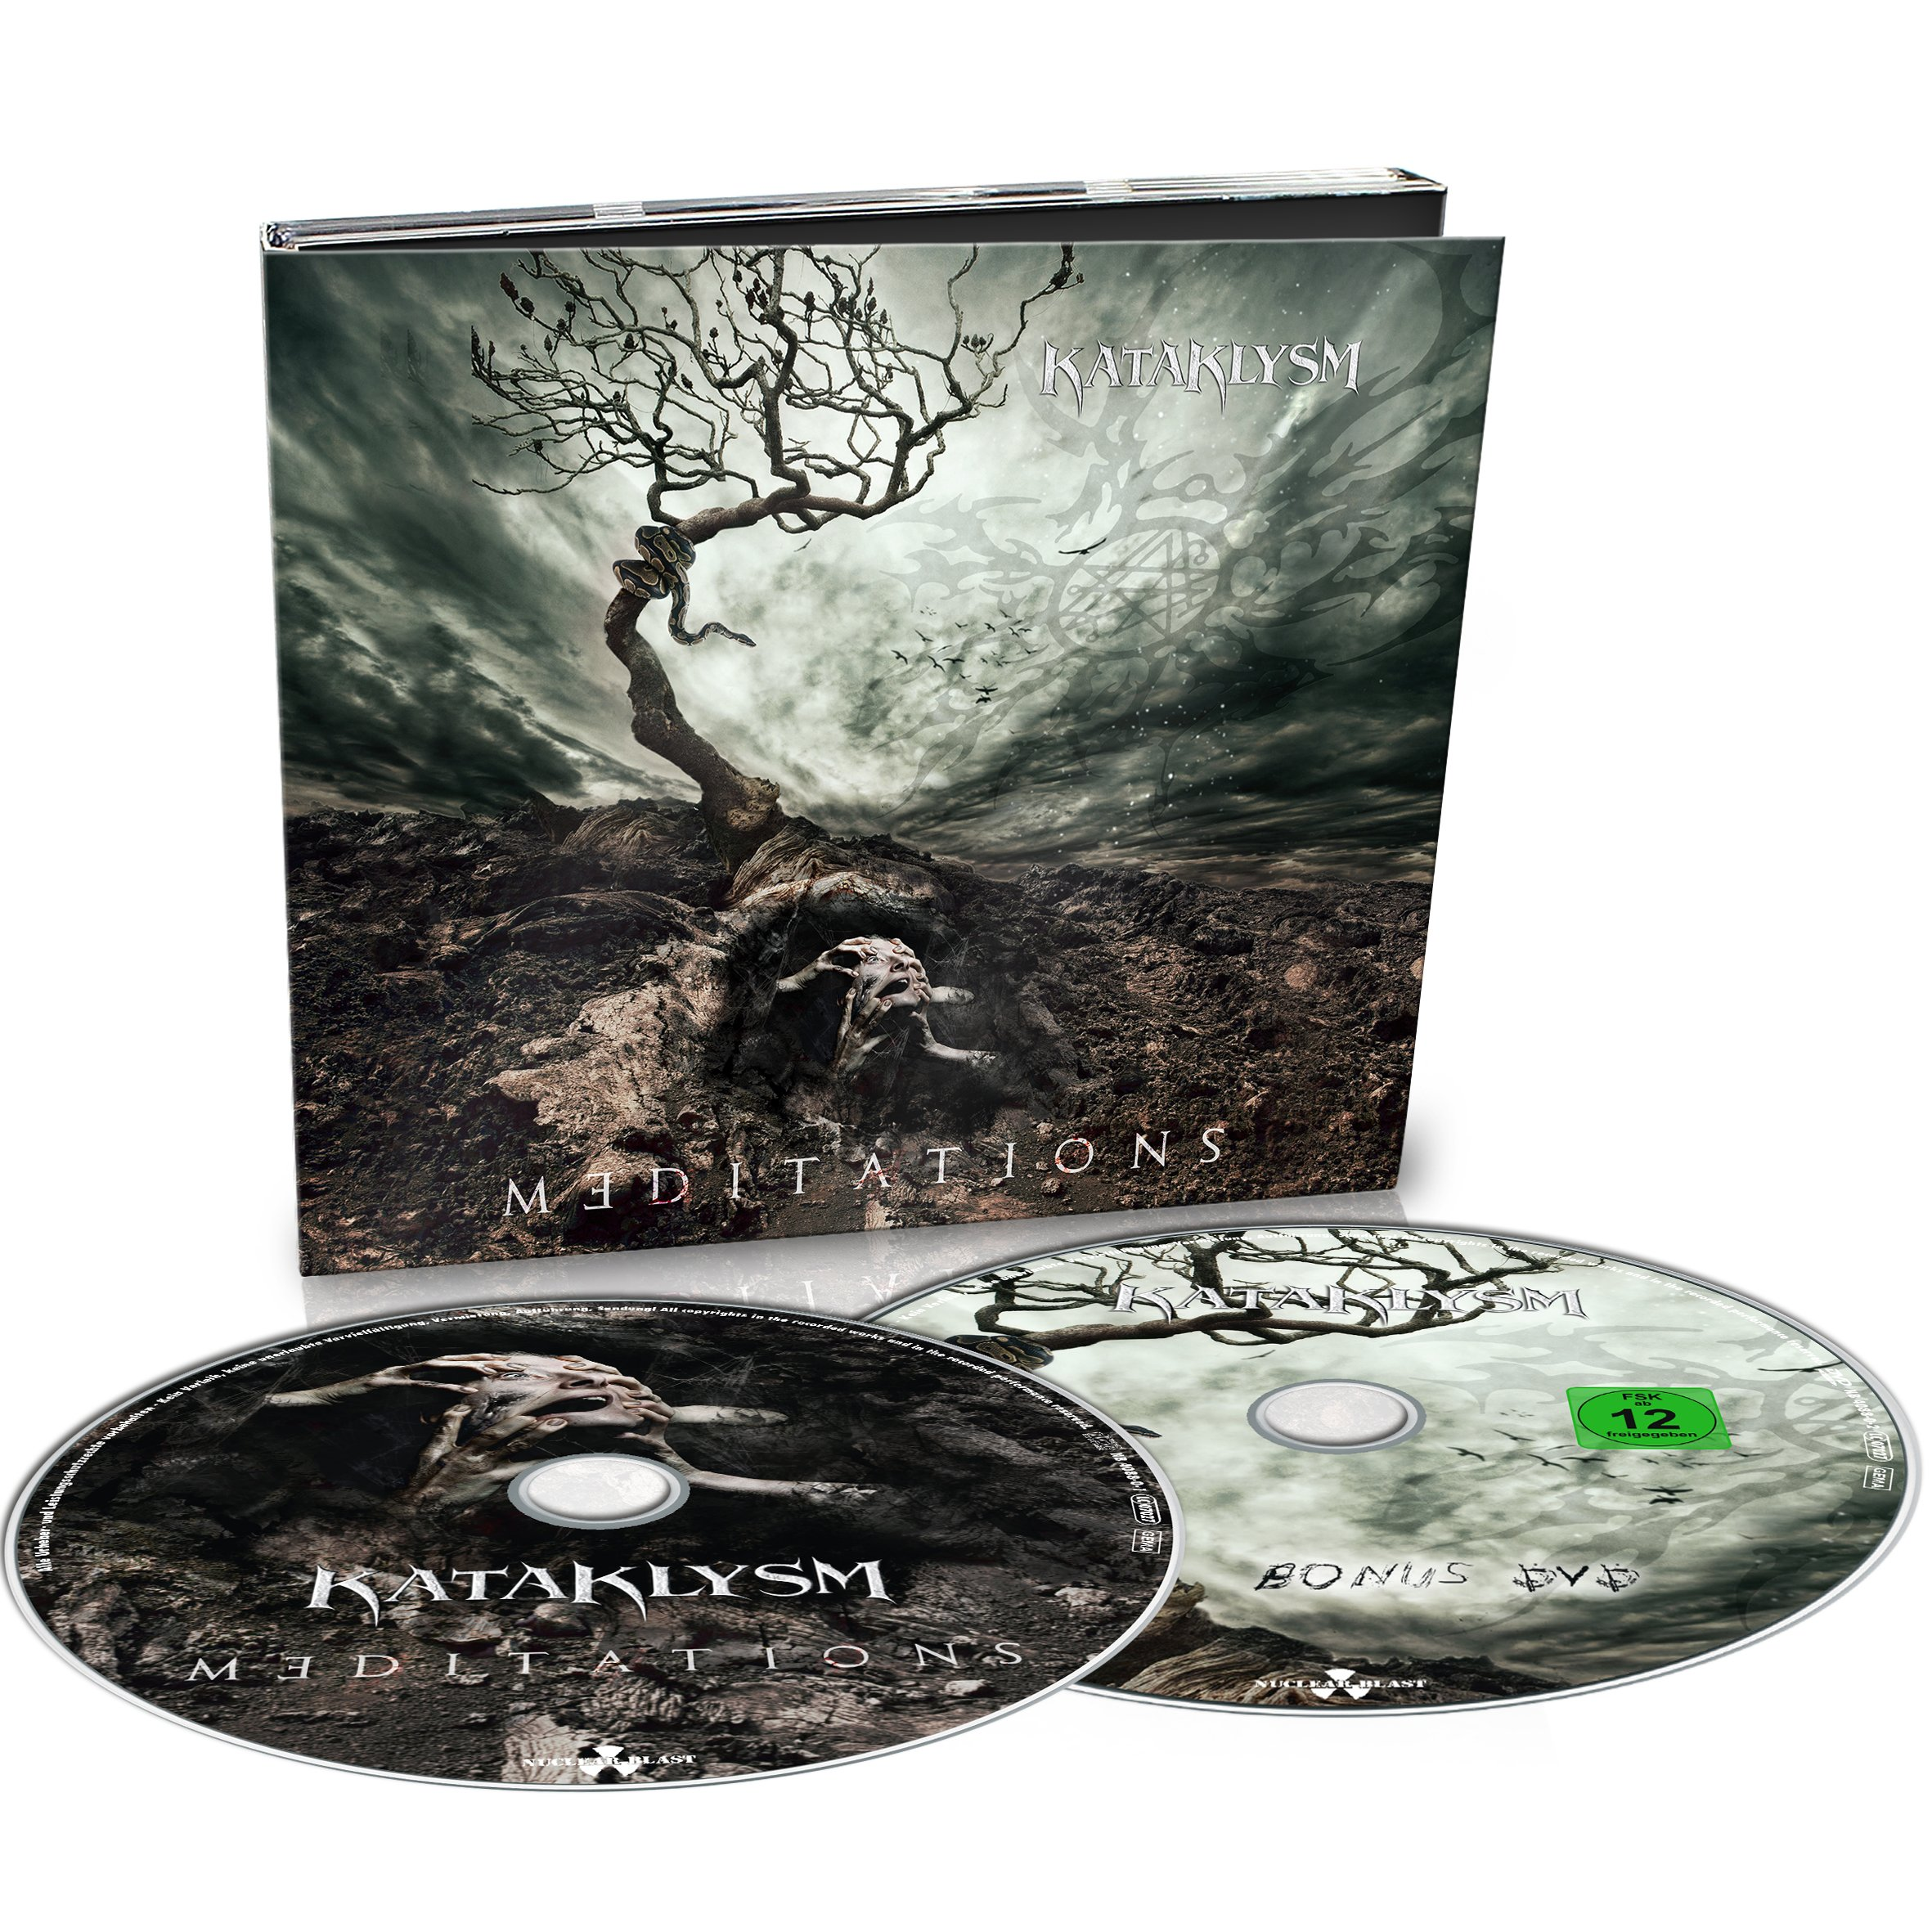 CD : Kataklysm - Meditations (With DVD, Special Edition, United Kingdom - Import, 2PC)